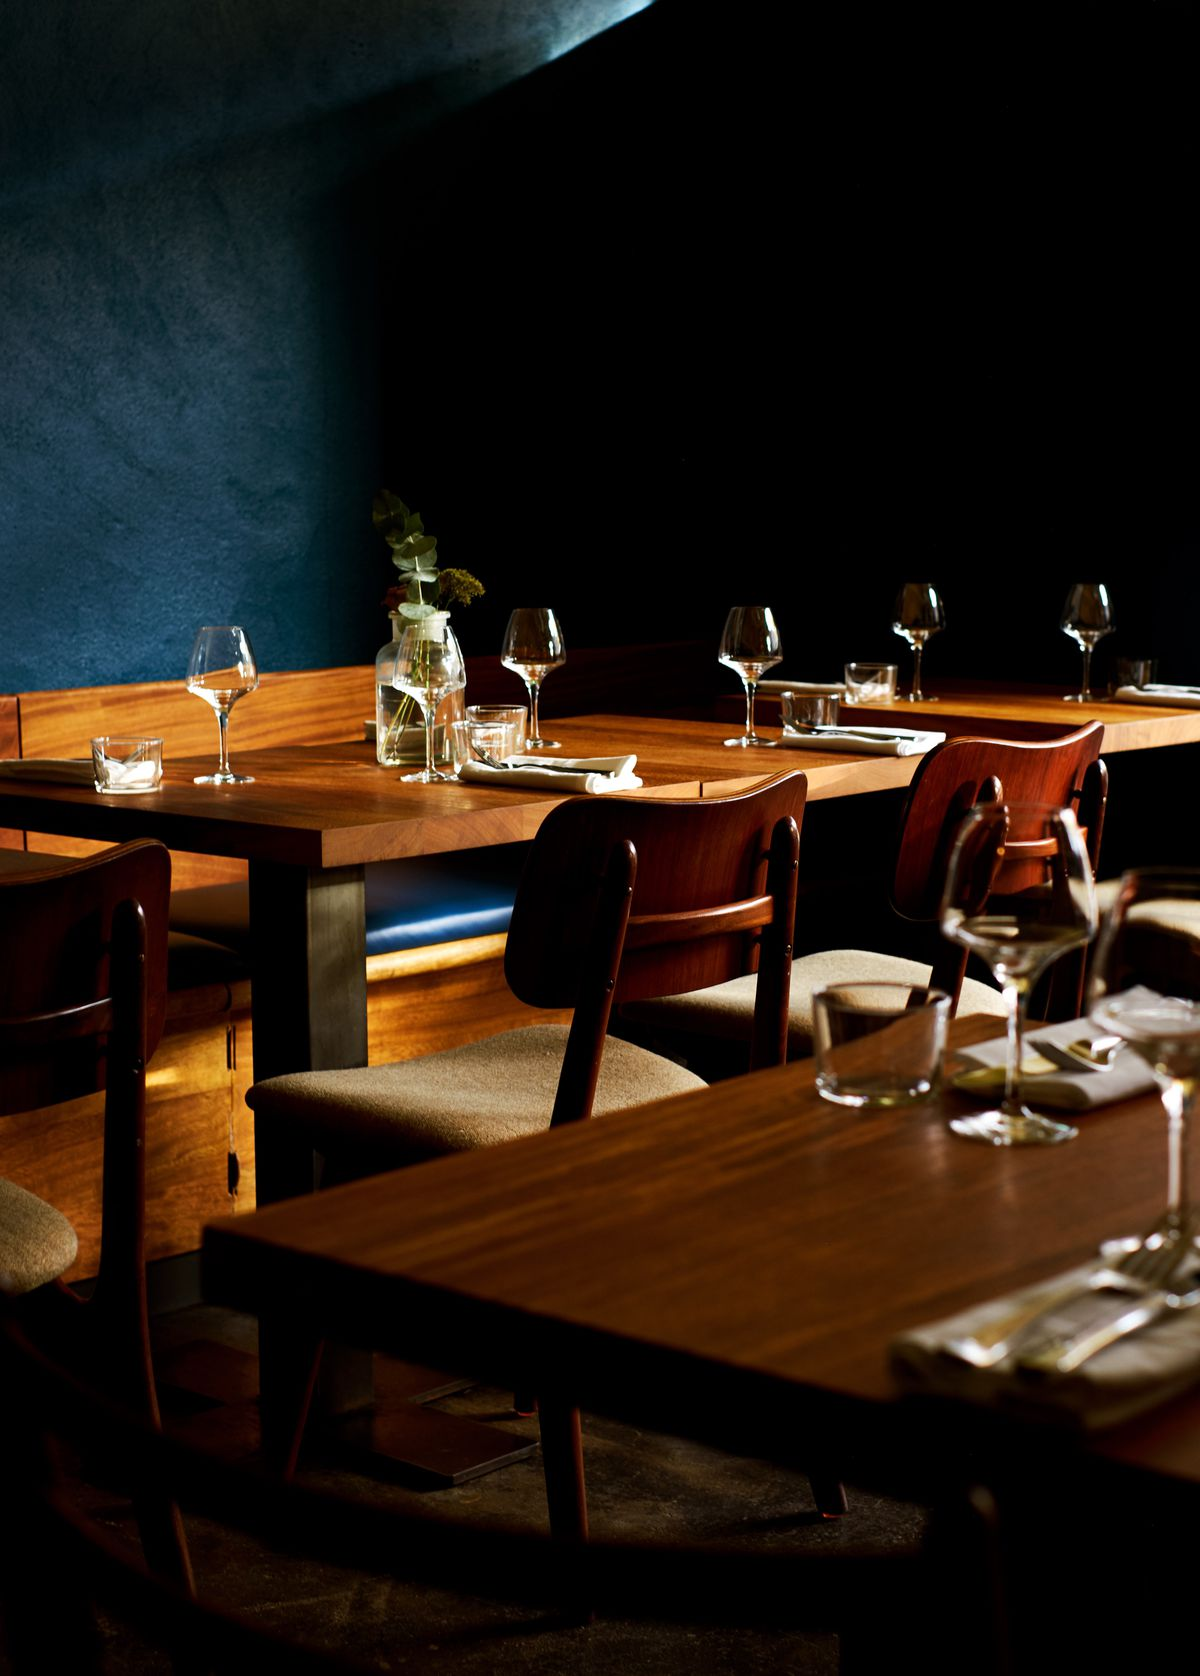 The dining room at Levan, Peckham's newest, coolest restaurant from the team behind Salon in Brixton